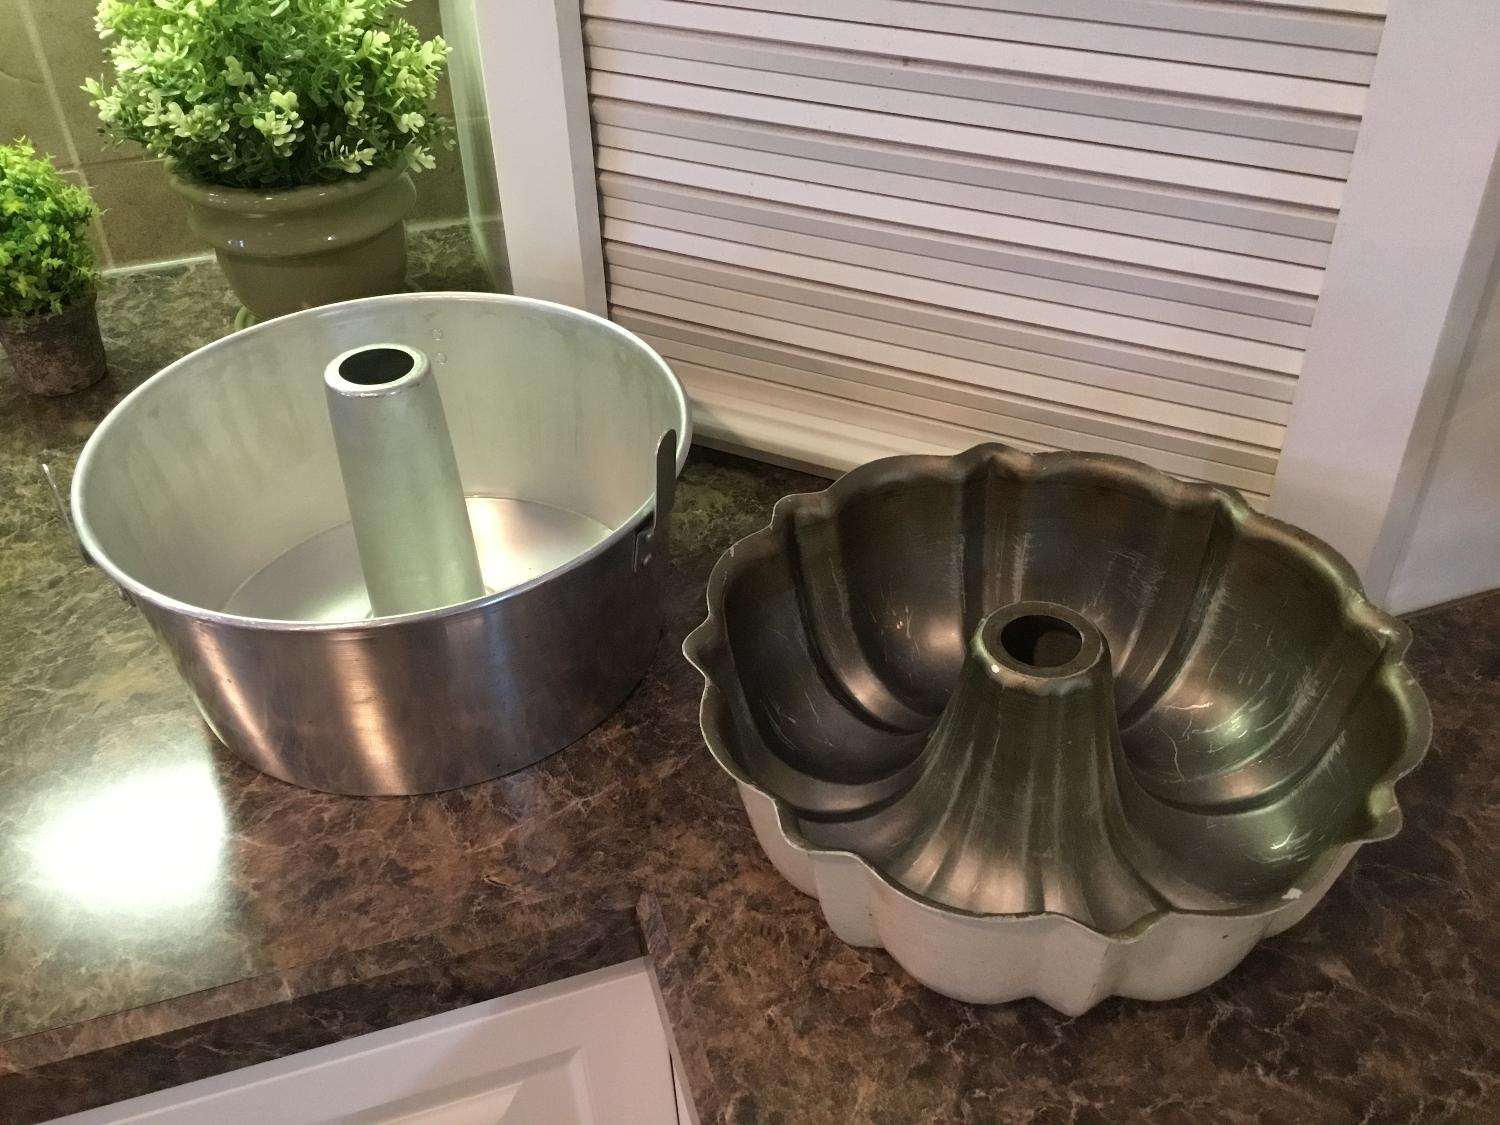 Find More Bundt Pan And Angel Food Cake Pans For Sale At